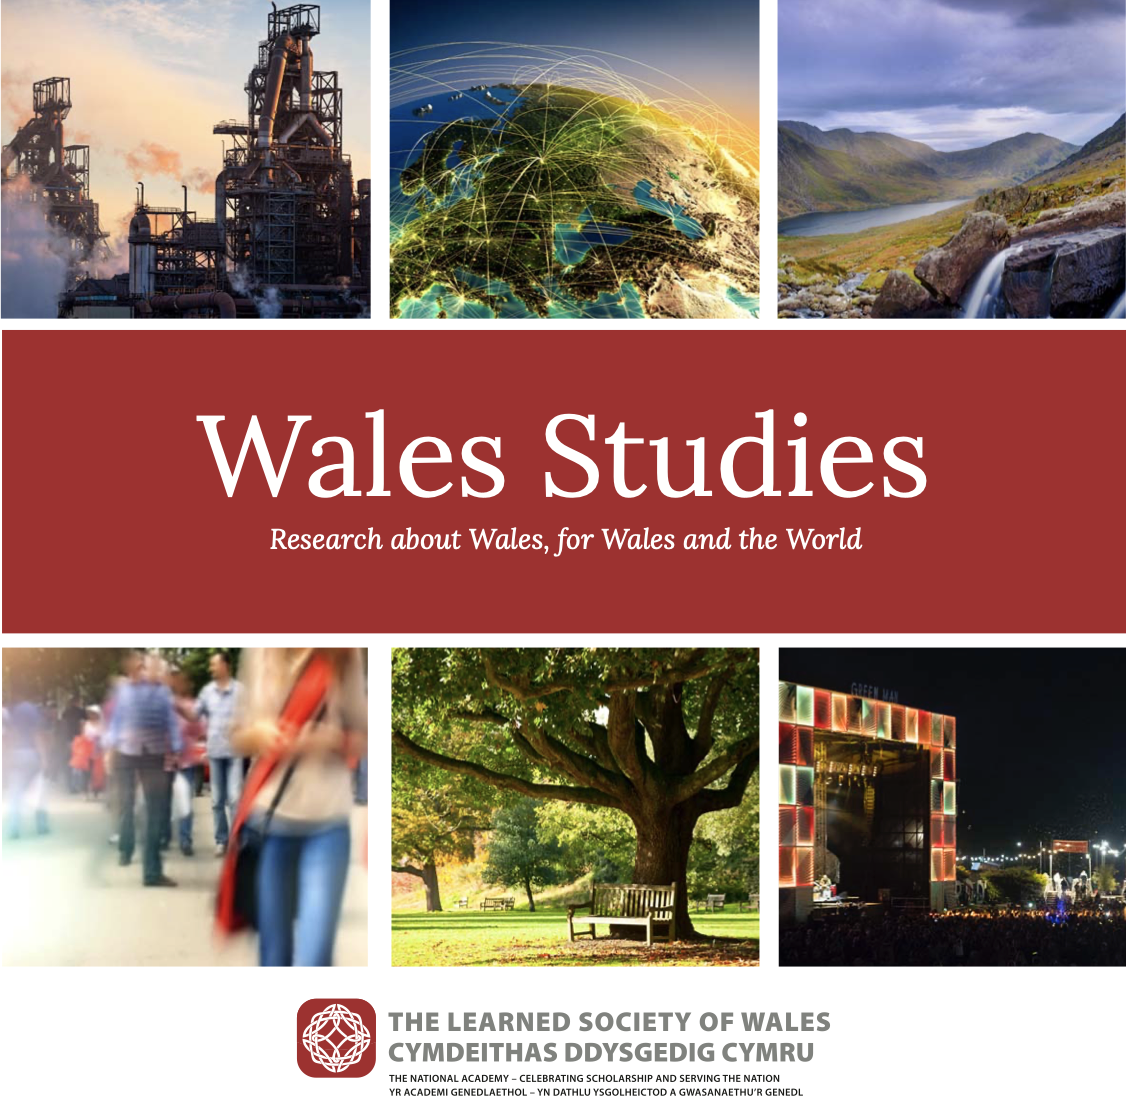 Wales Studies booklet cover